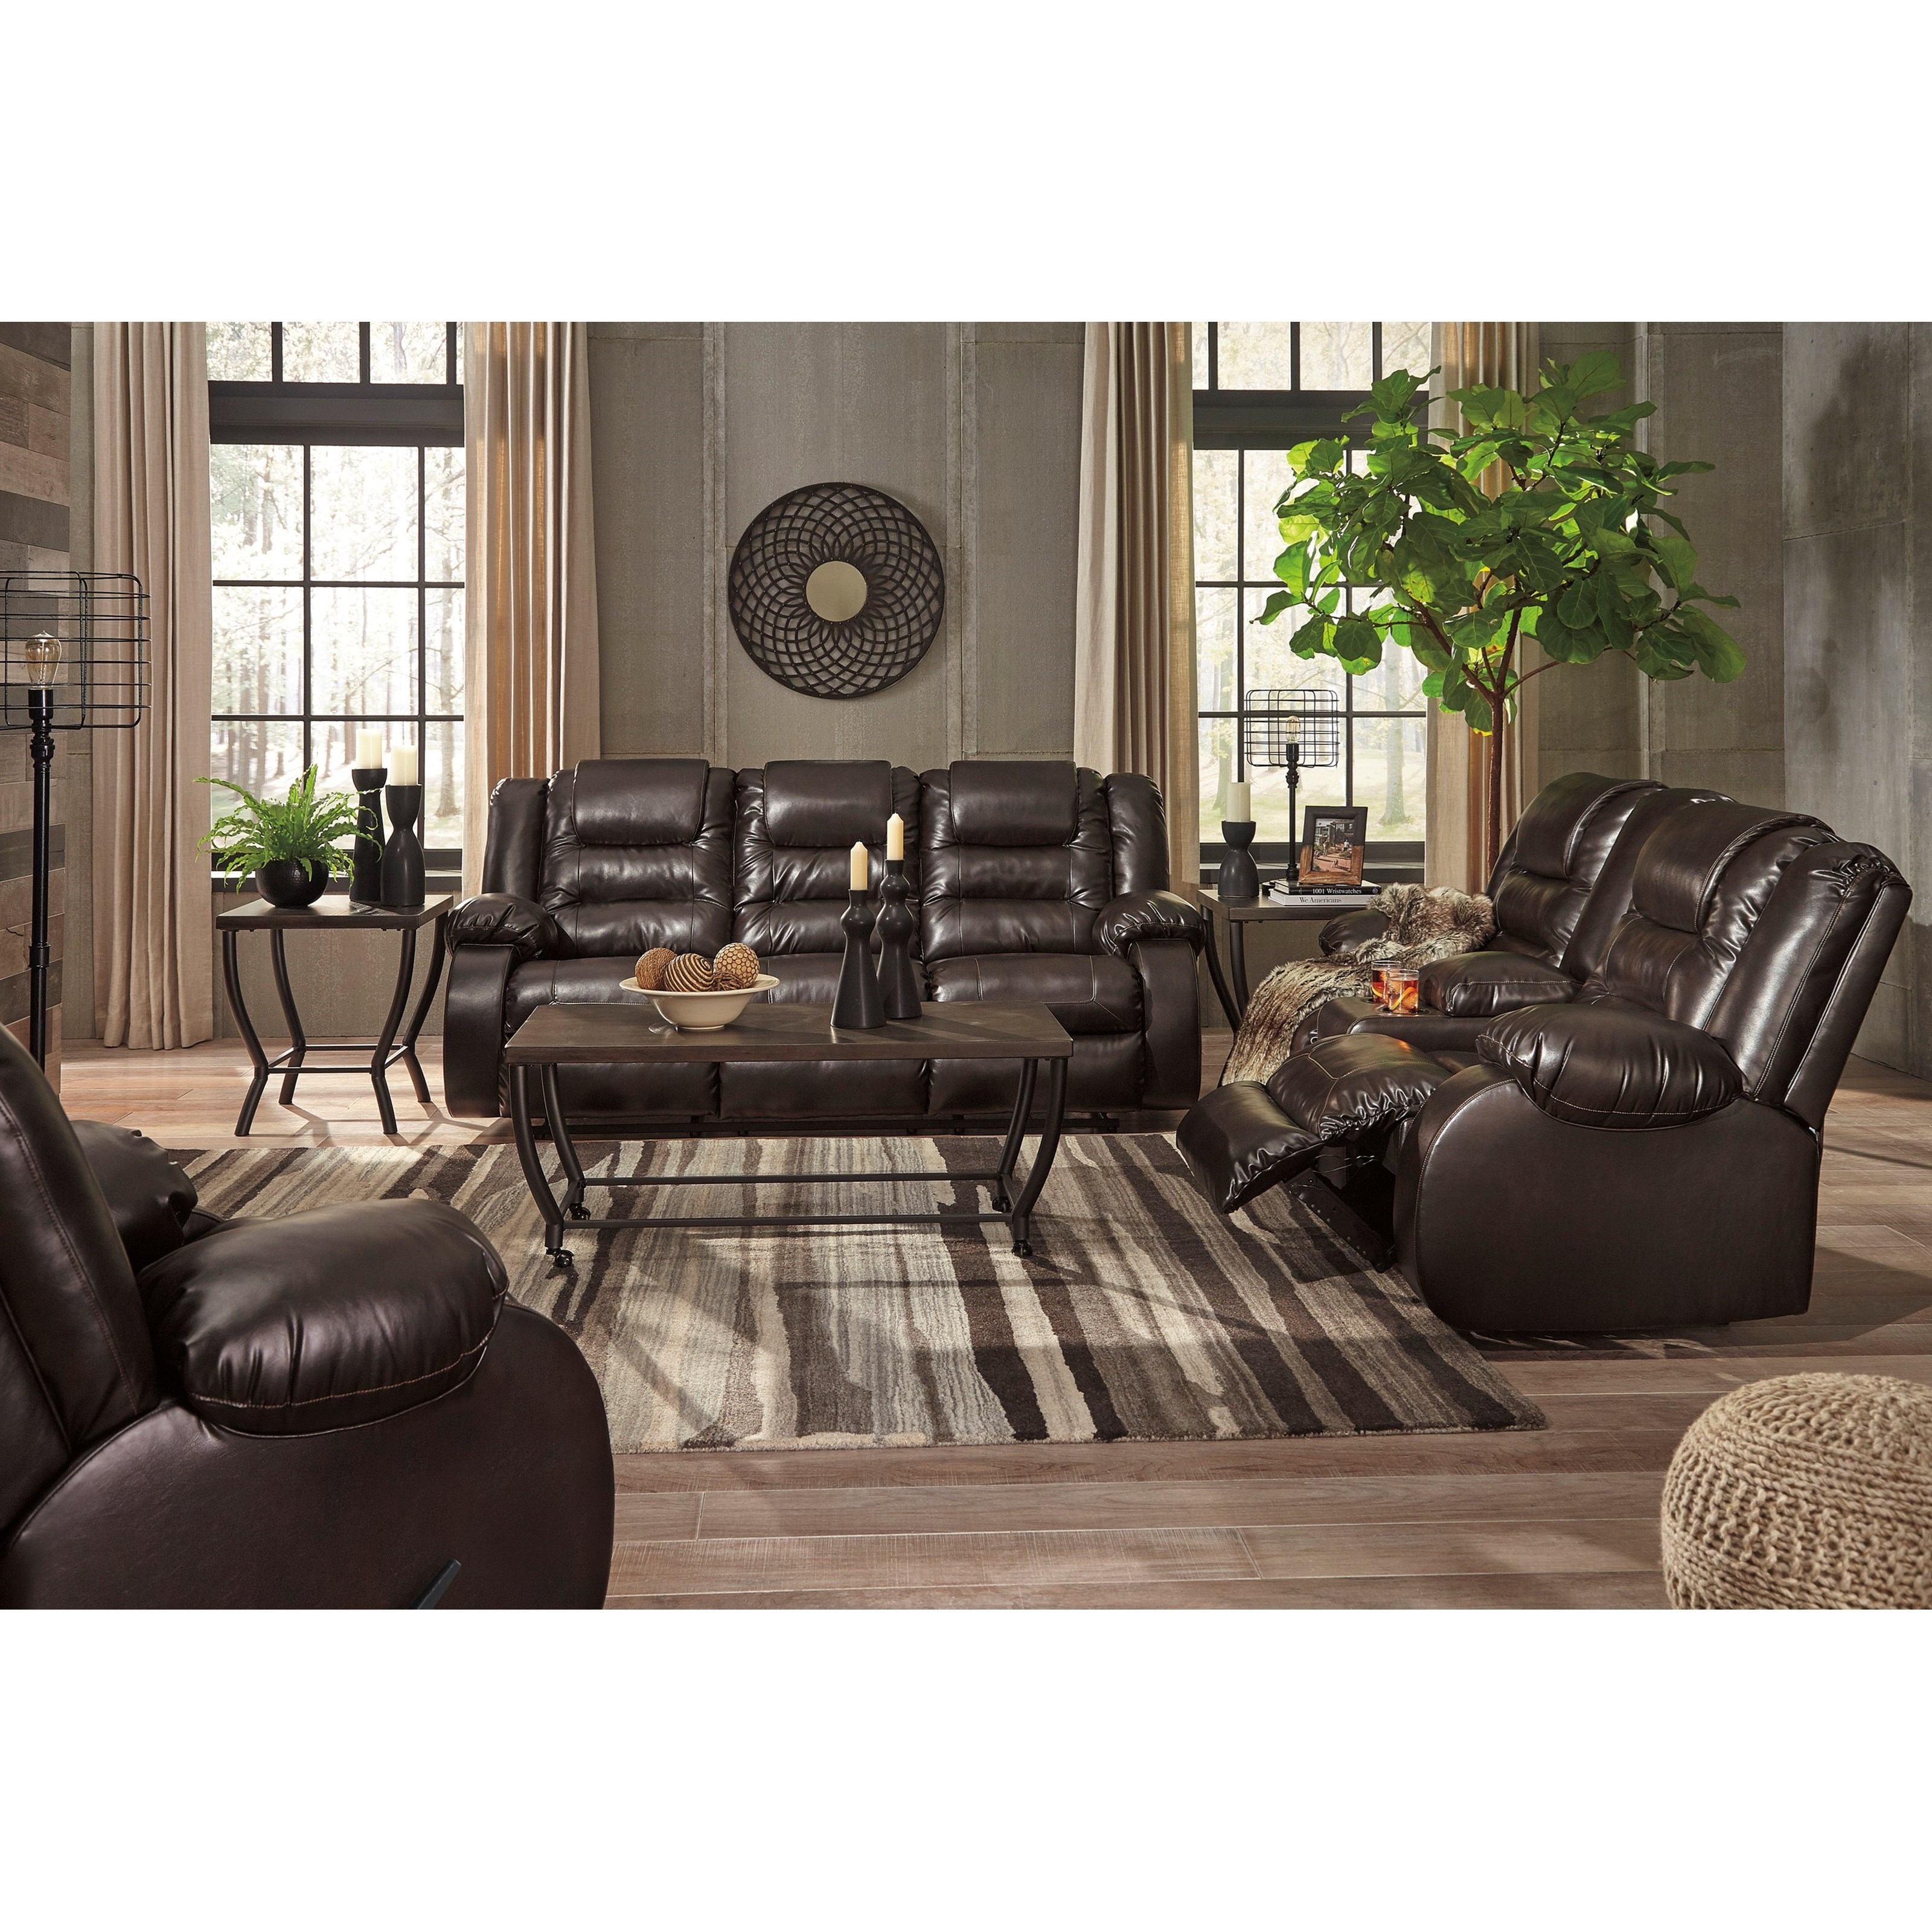 Levits Furniture: Signature Design By Ashley Vacherie Reclining Living Room